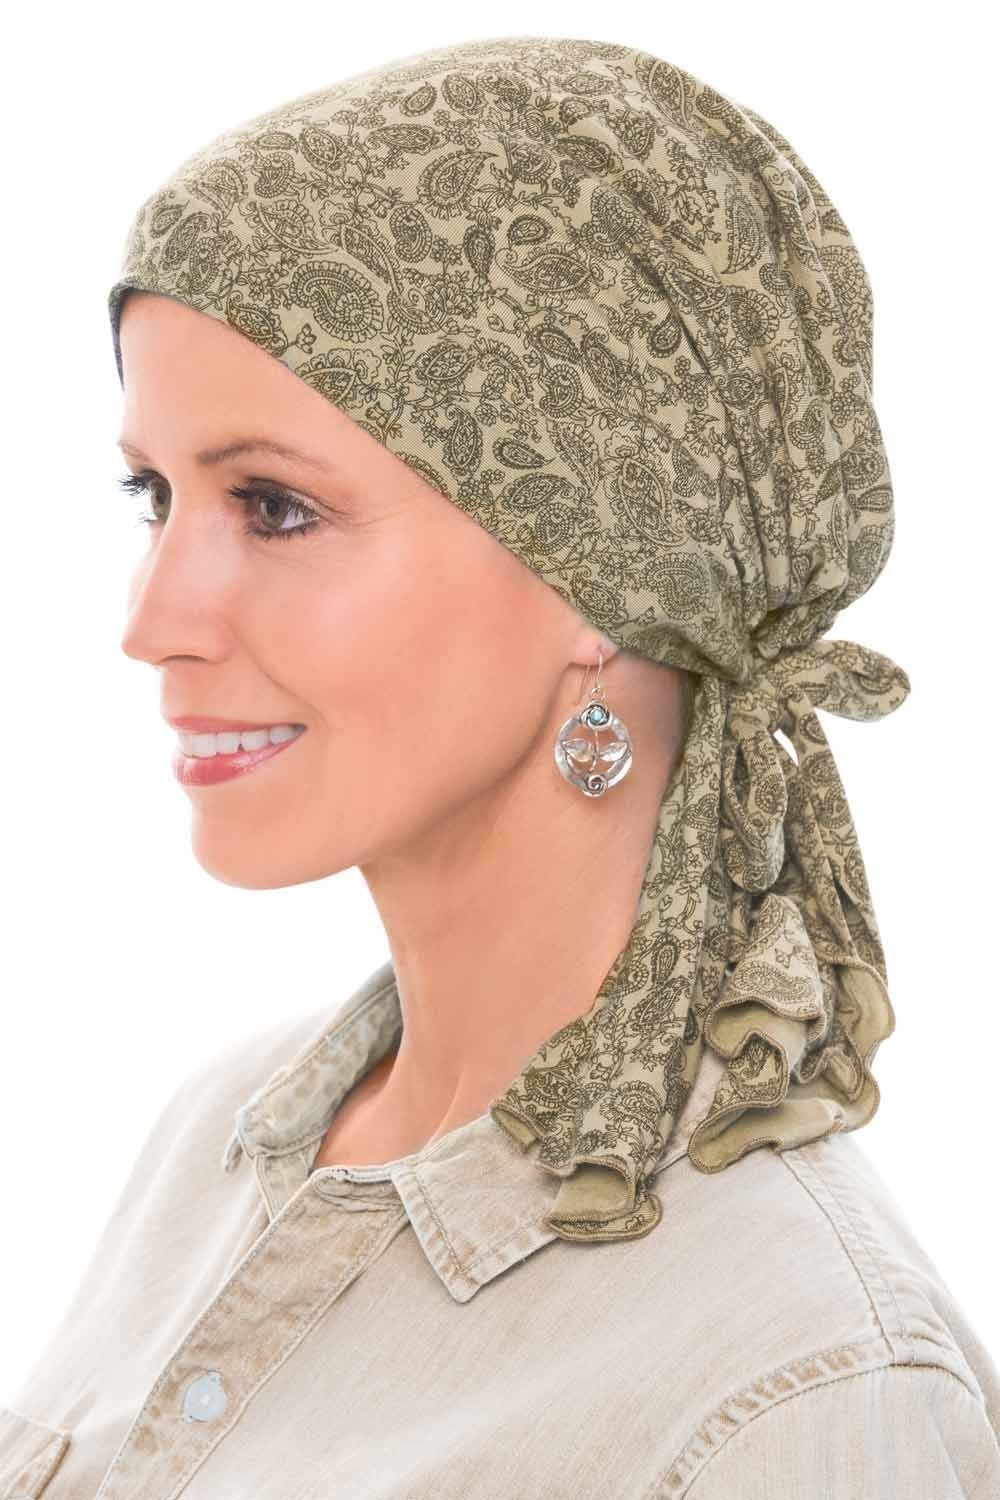 Cardani So Simple Scarf - Pre Tied Head Scarf for Women in Soft Bamboo - Cancer & Chemo Patients Luxury Bamboo - Paisley Mocha/Beige